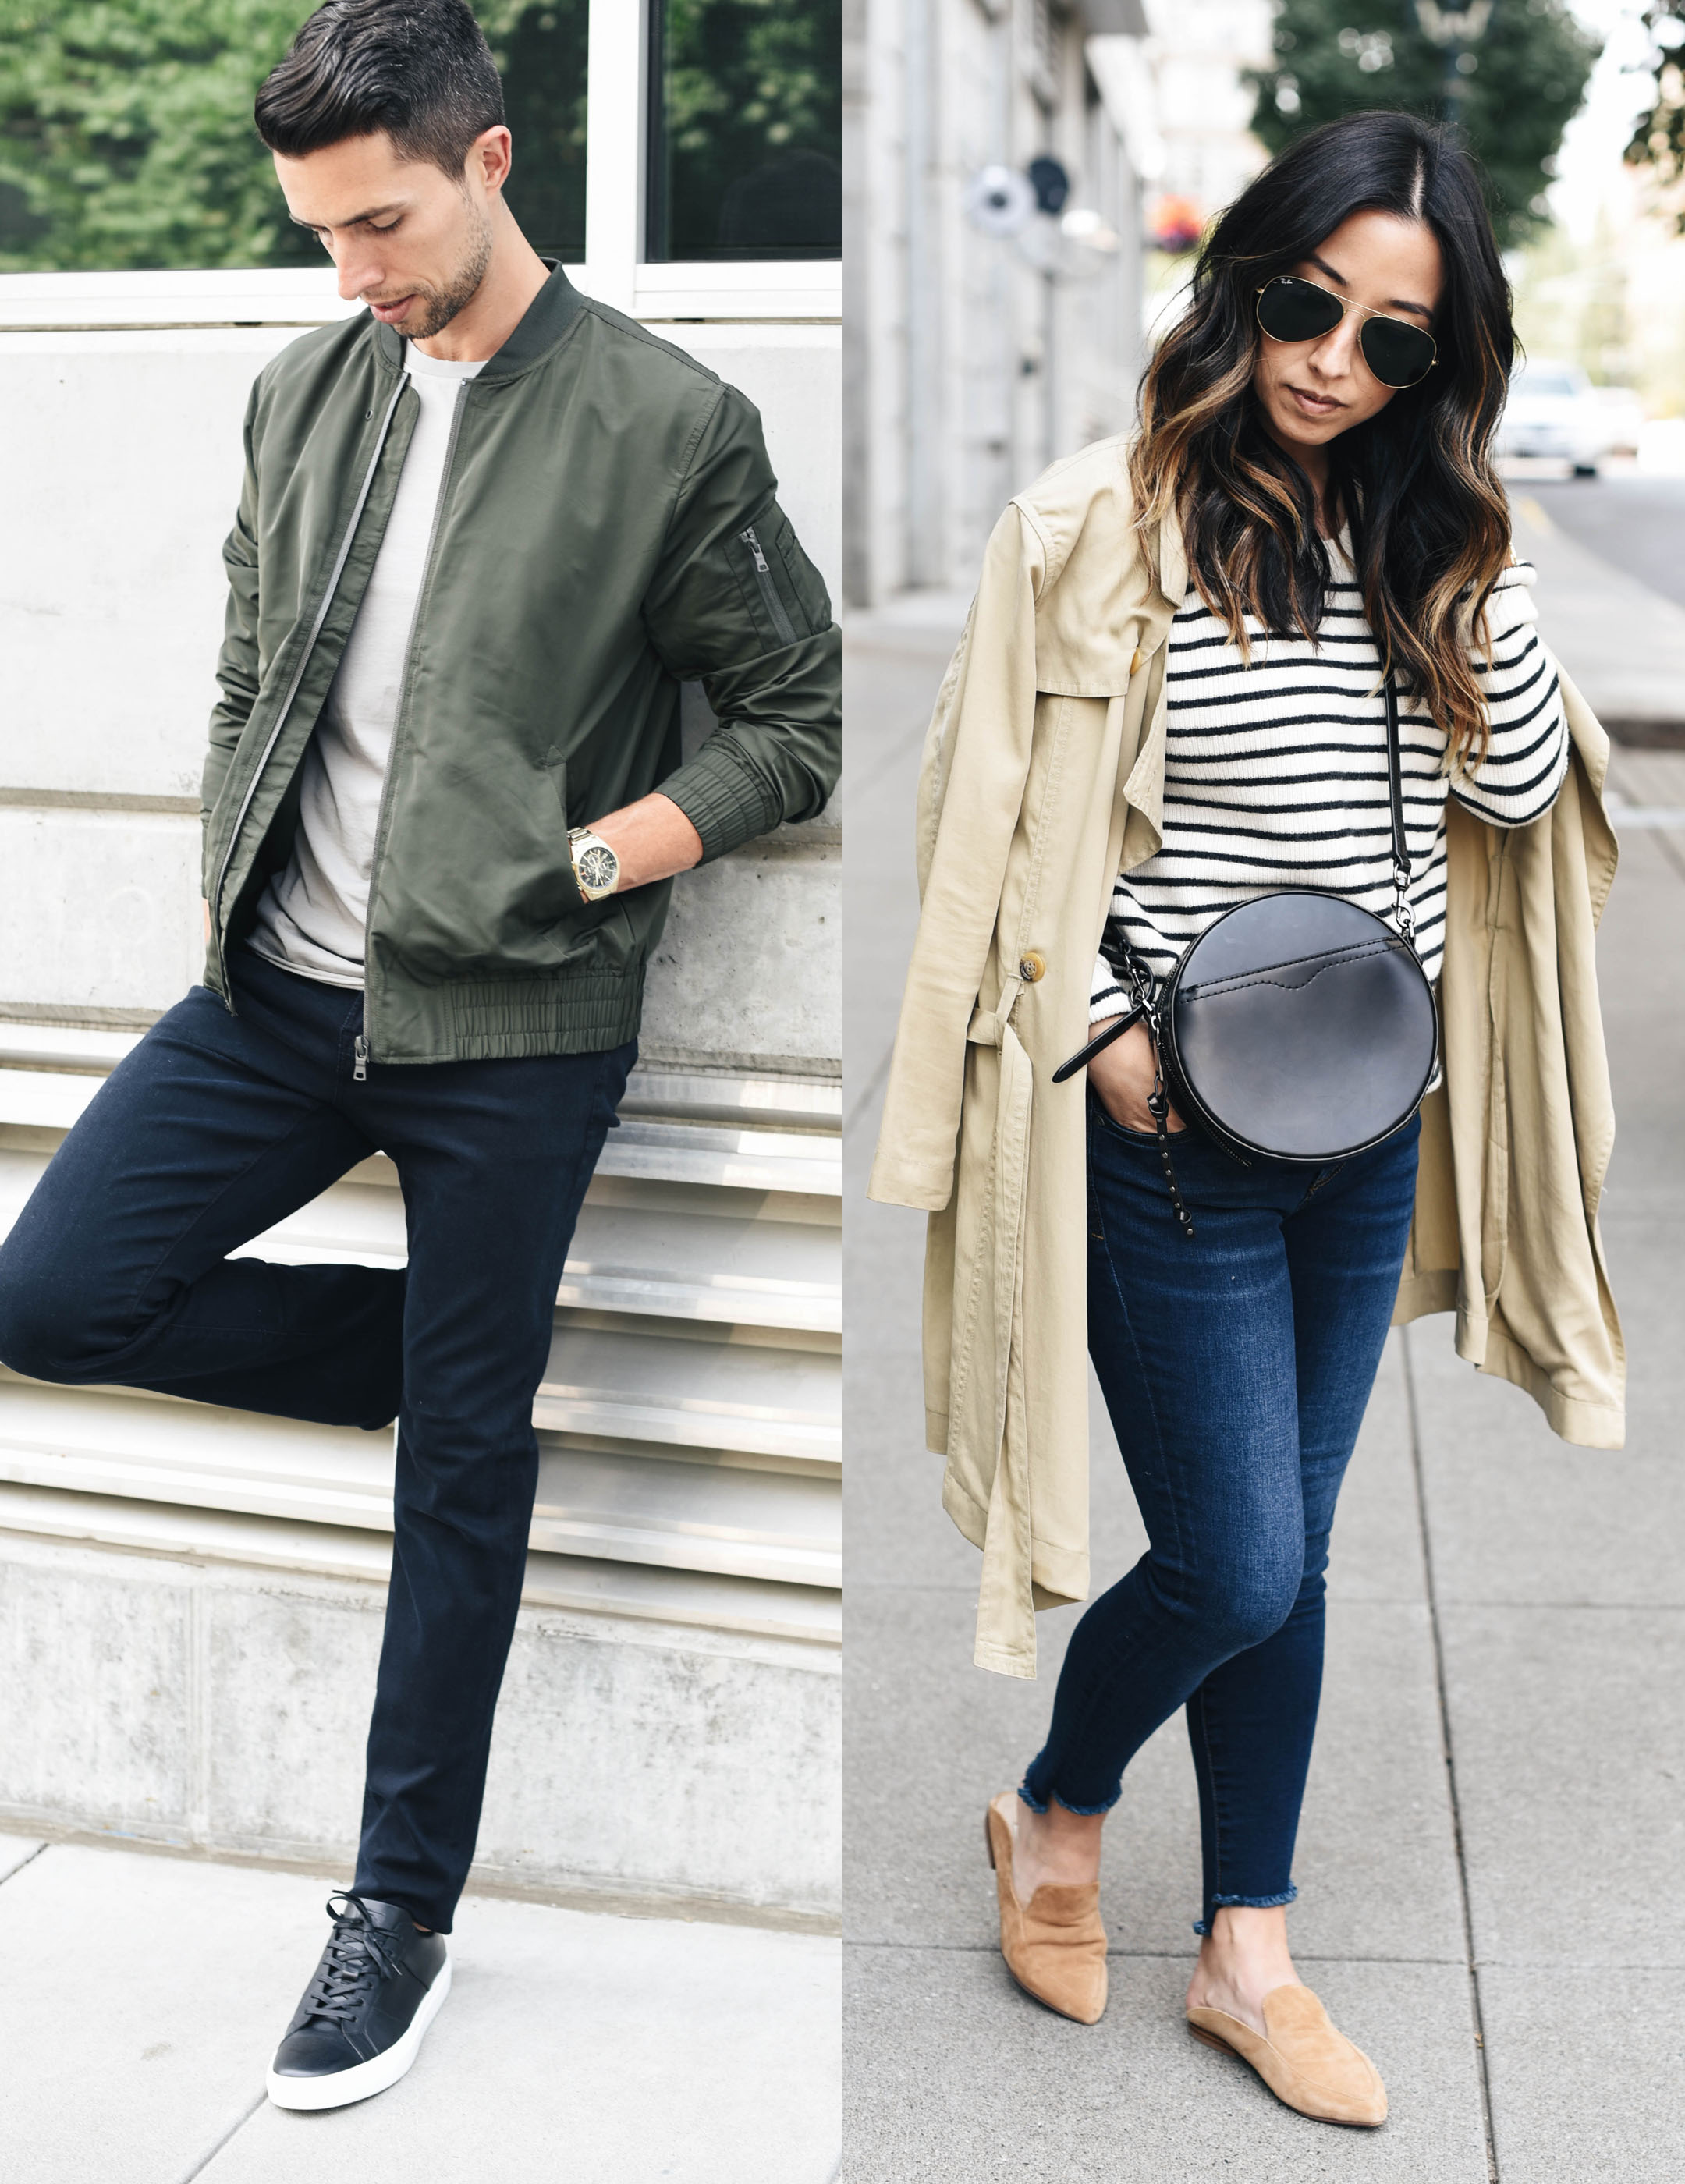 His and hers transitional looks